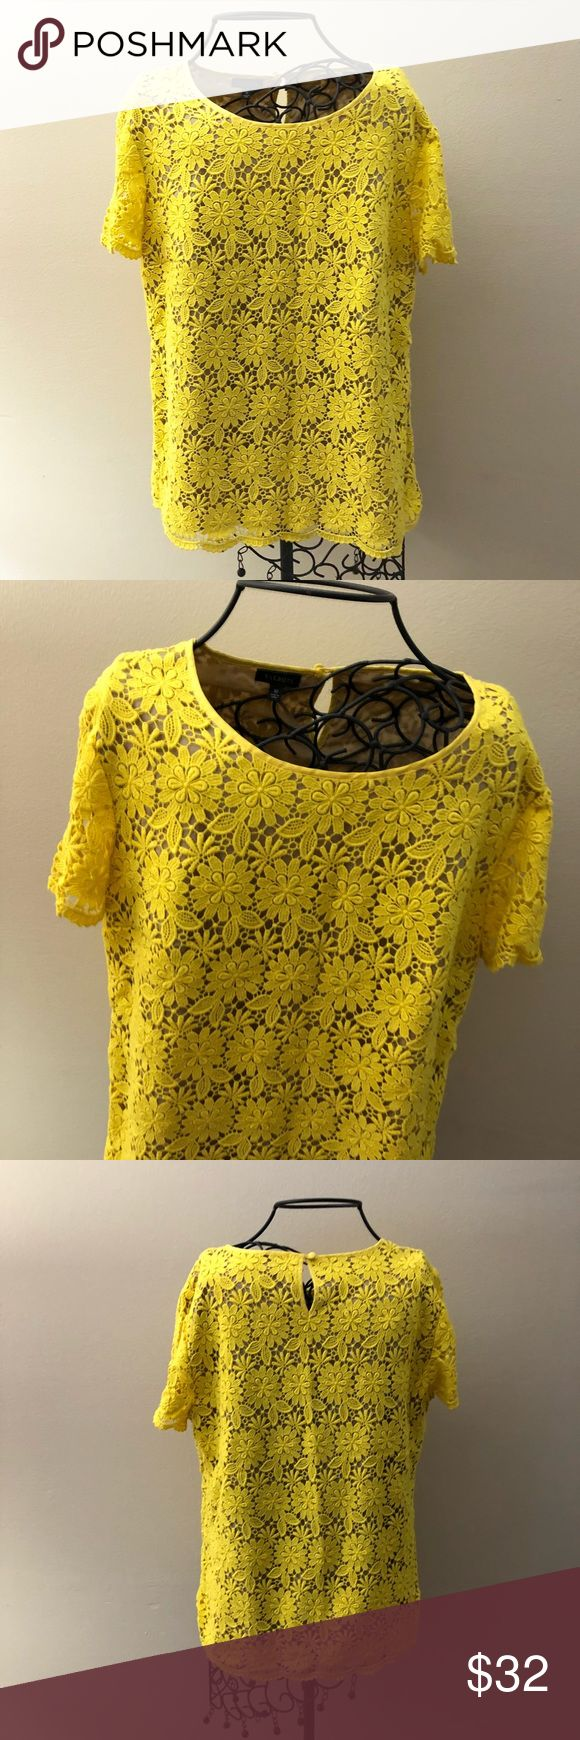 """Yellow Flowered Short Sleeve Top. NWOT Talbots. New without tags. New condition. Size 10.  Beautiful yellow flowered top. Nude underlay. Zip up side. Measurements lying flat: armpit to armpit 20"""" and length 25"""".  ❌ No trades or off Poshmark transactions.   👌🏻Quick shipping.   💁🏻Offers welcome through """"Make an Offer"""" feature.   👗👠 Bundle discount.   ❔ Feel free to ask any questions. Talbots Tops"""